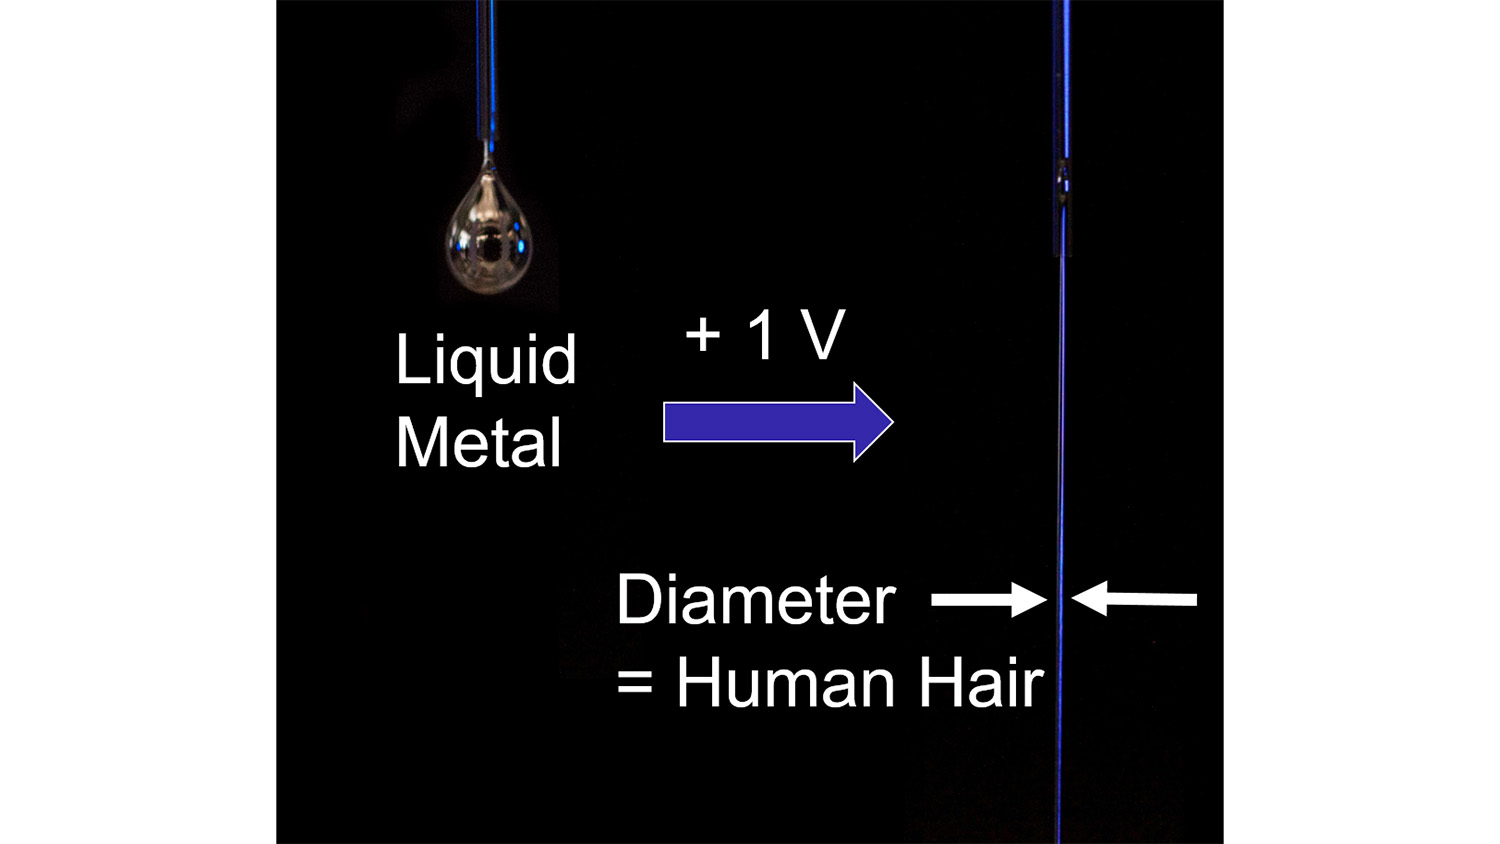 drop of liquid metal turns to a stream of liquid metal when a small voltage is applied